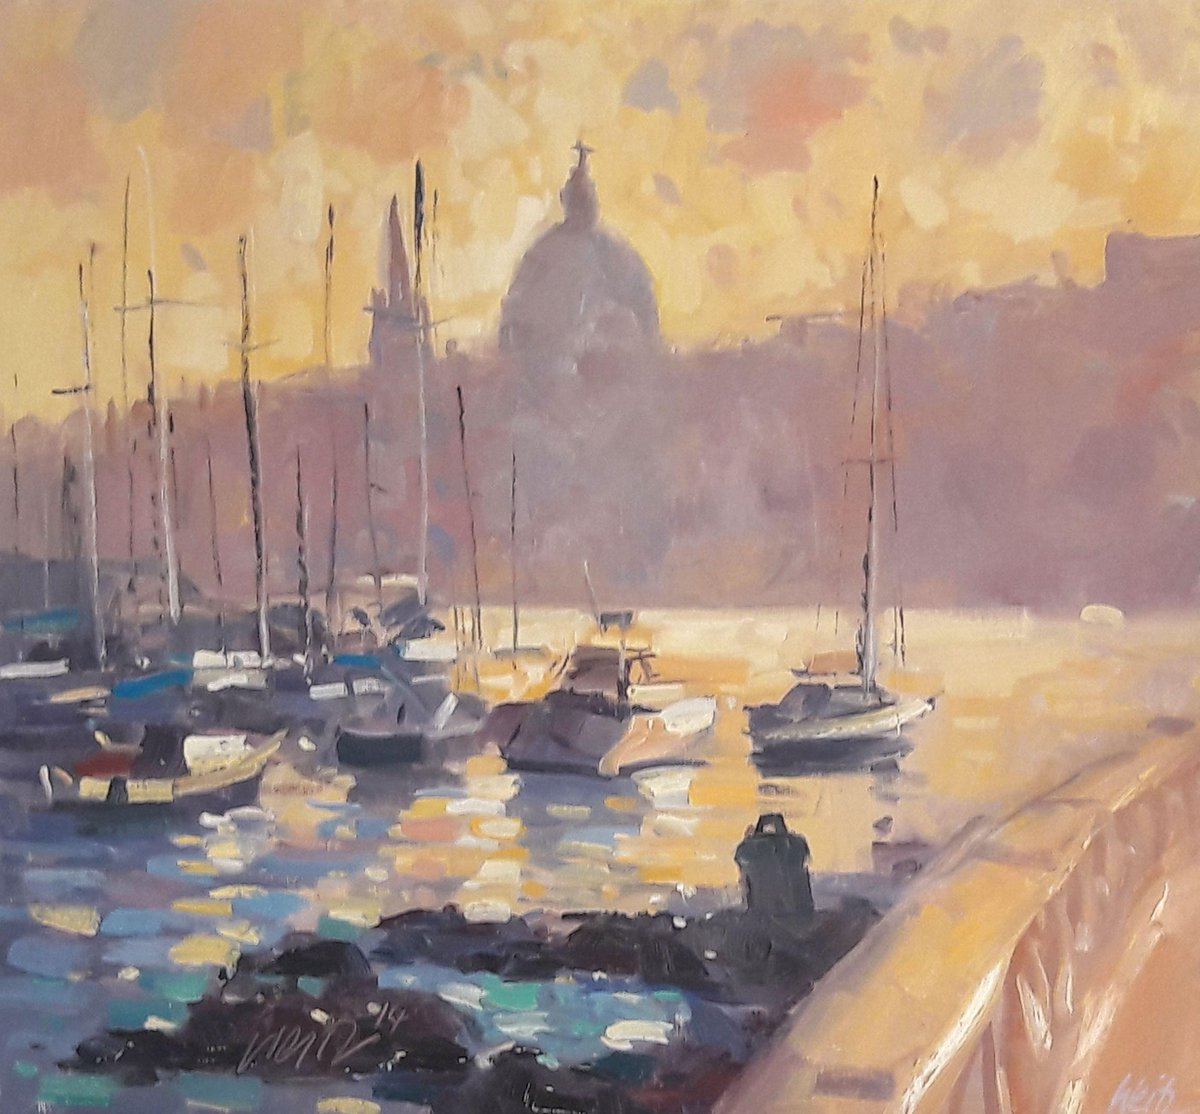 A lovely impression of Valletta from Ta' Xbiex by artist Anthony Weitz.   Info and whole image of painting: http://ow.ly/loU550v0Y0B   #TaXbiex #Valletta #silhouette #boats #sailboats #AnthonyWeitz #pleinair #impressionism #pleinairpainting #Maltapainting